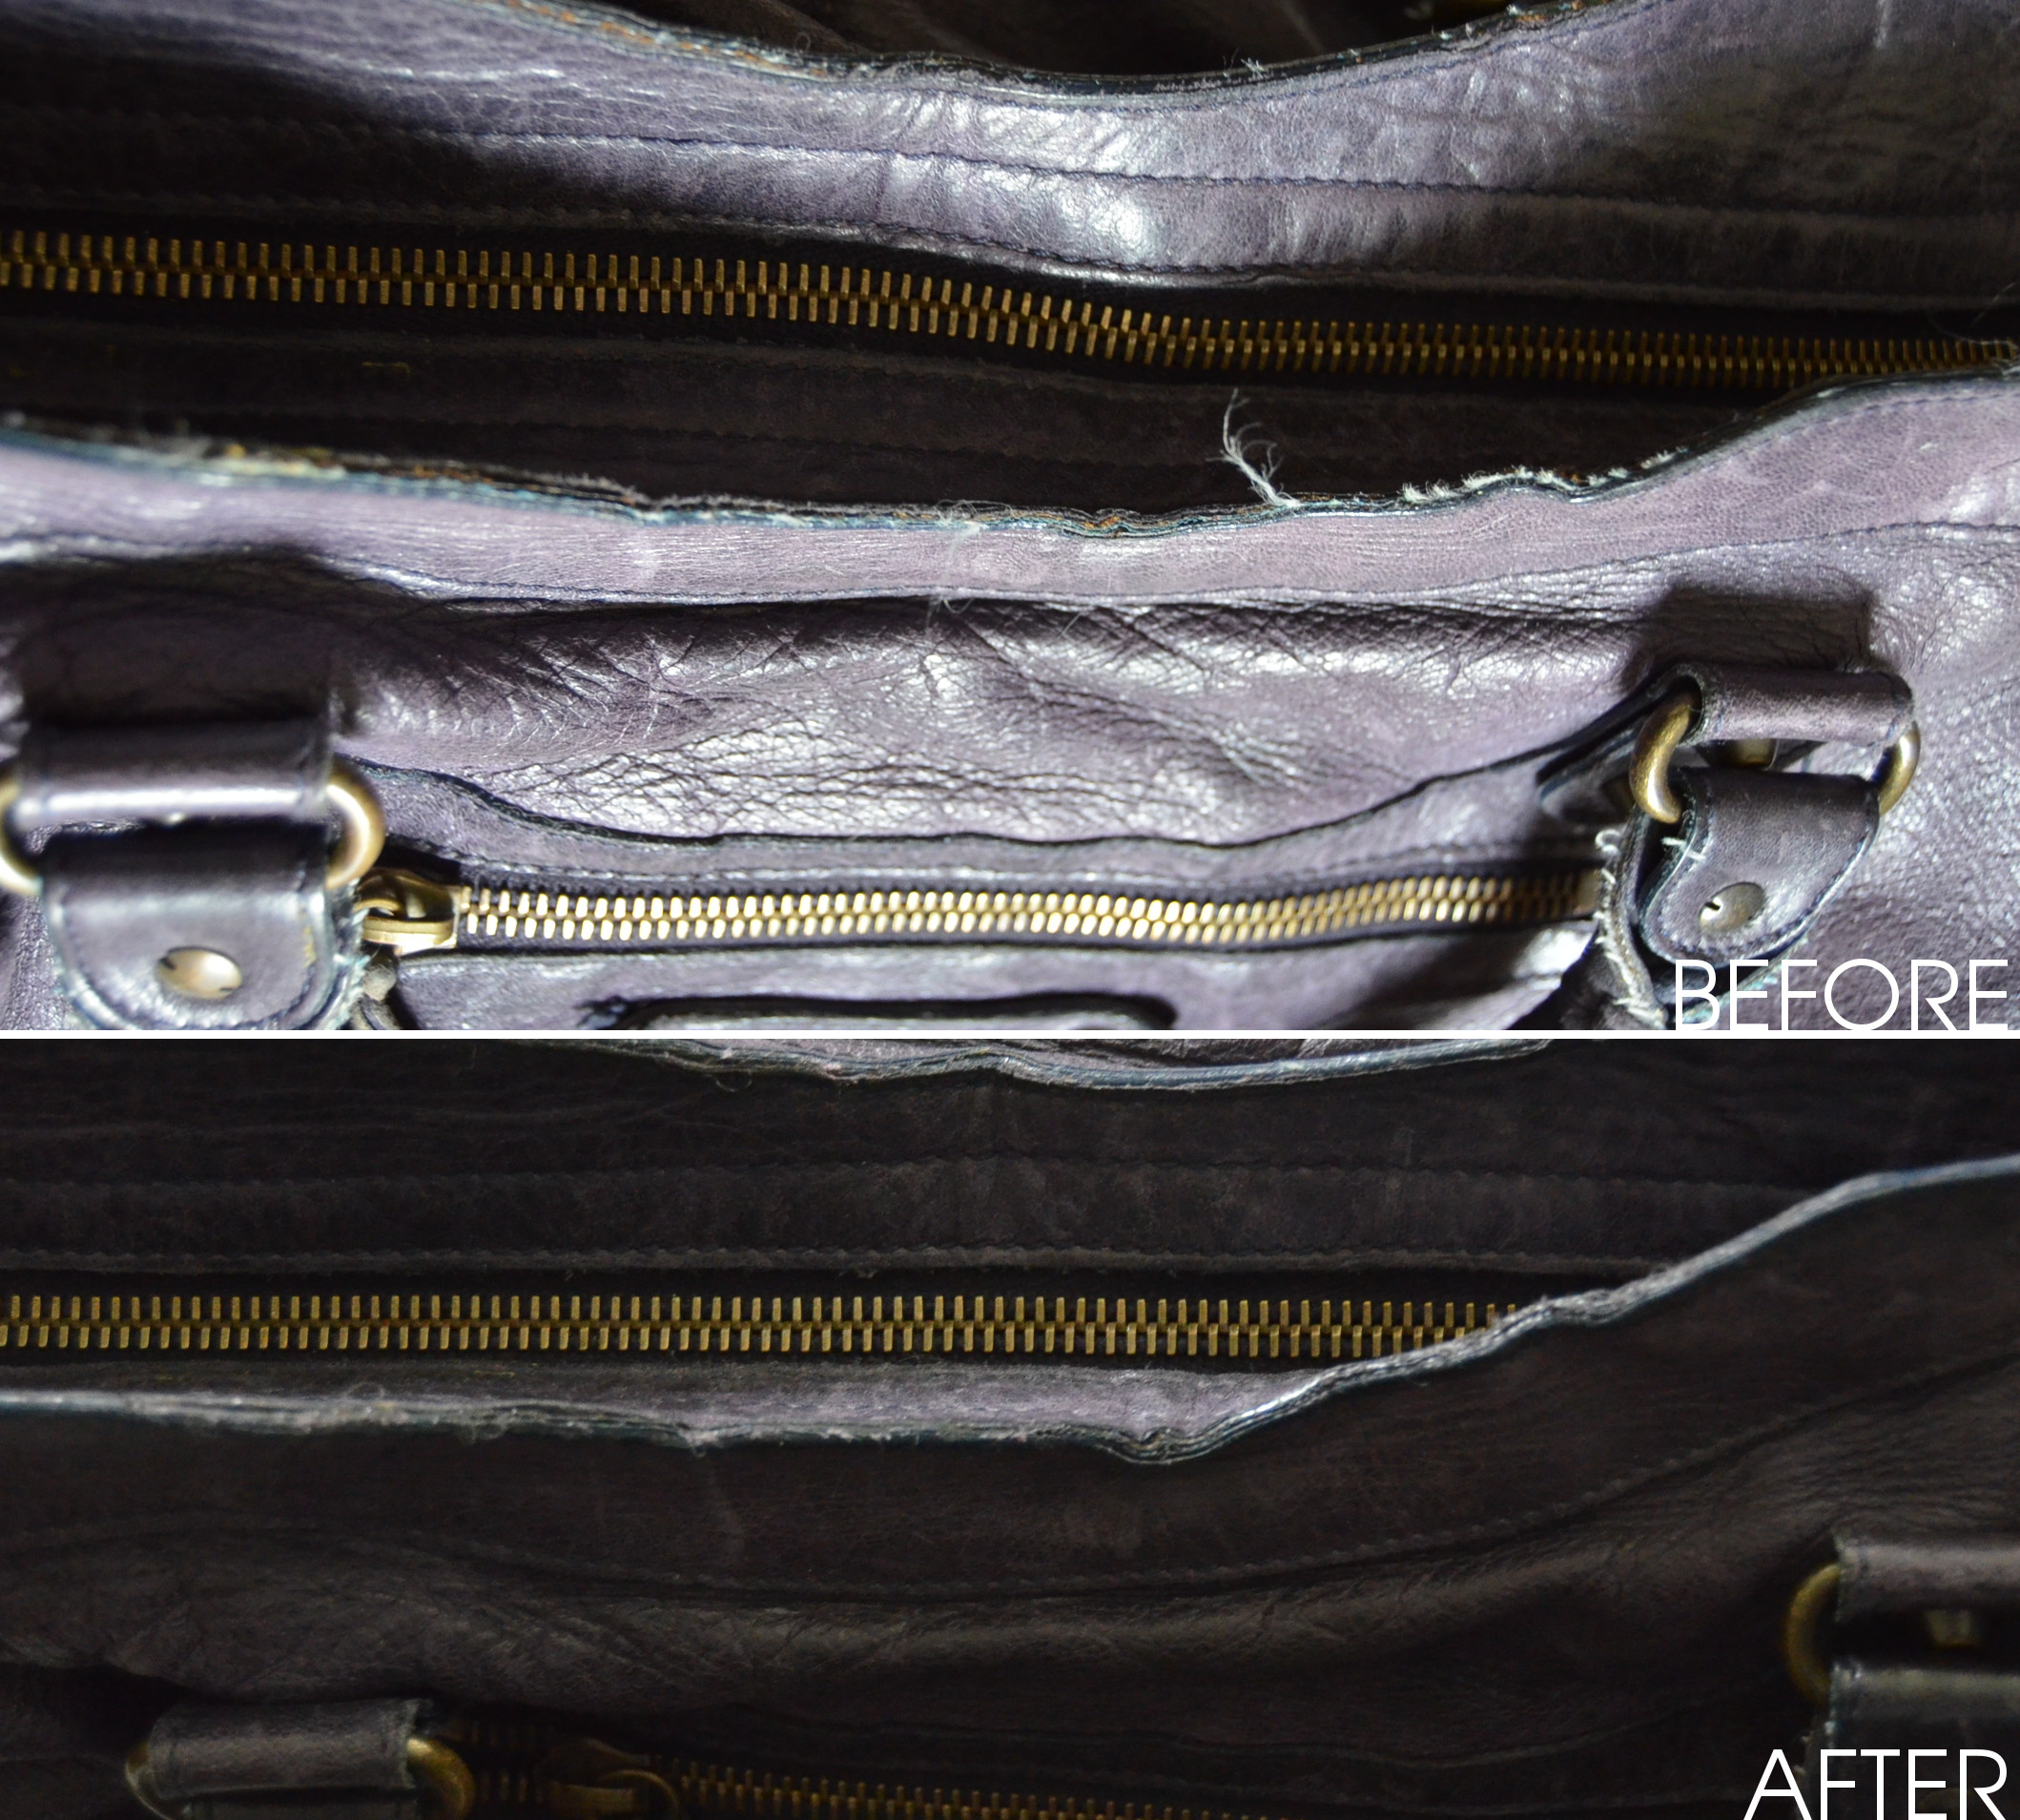 repairing bag edges